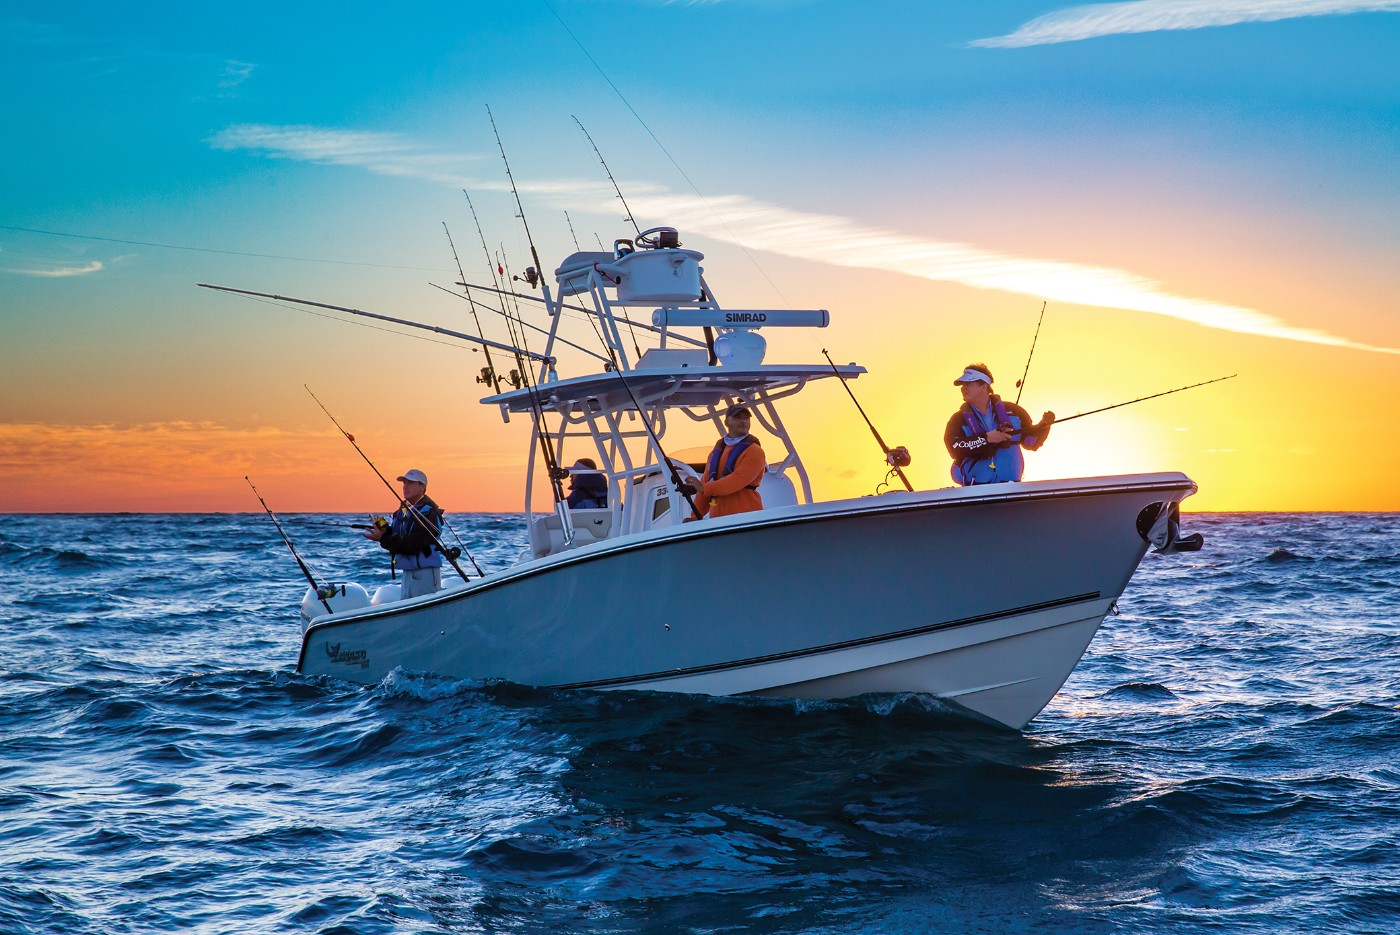 Opt For a Custom Made Marine Cover For Your Favorite Boat